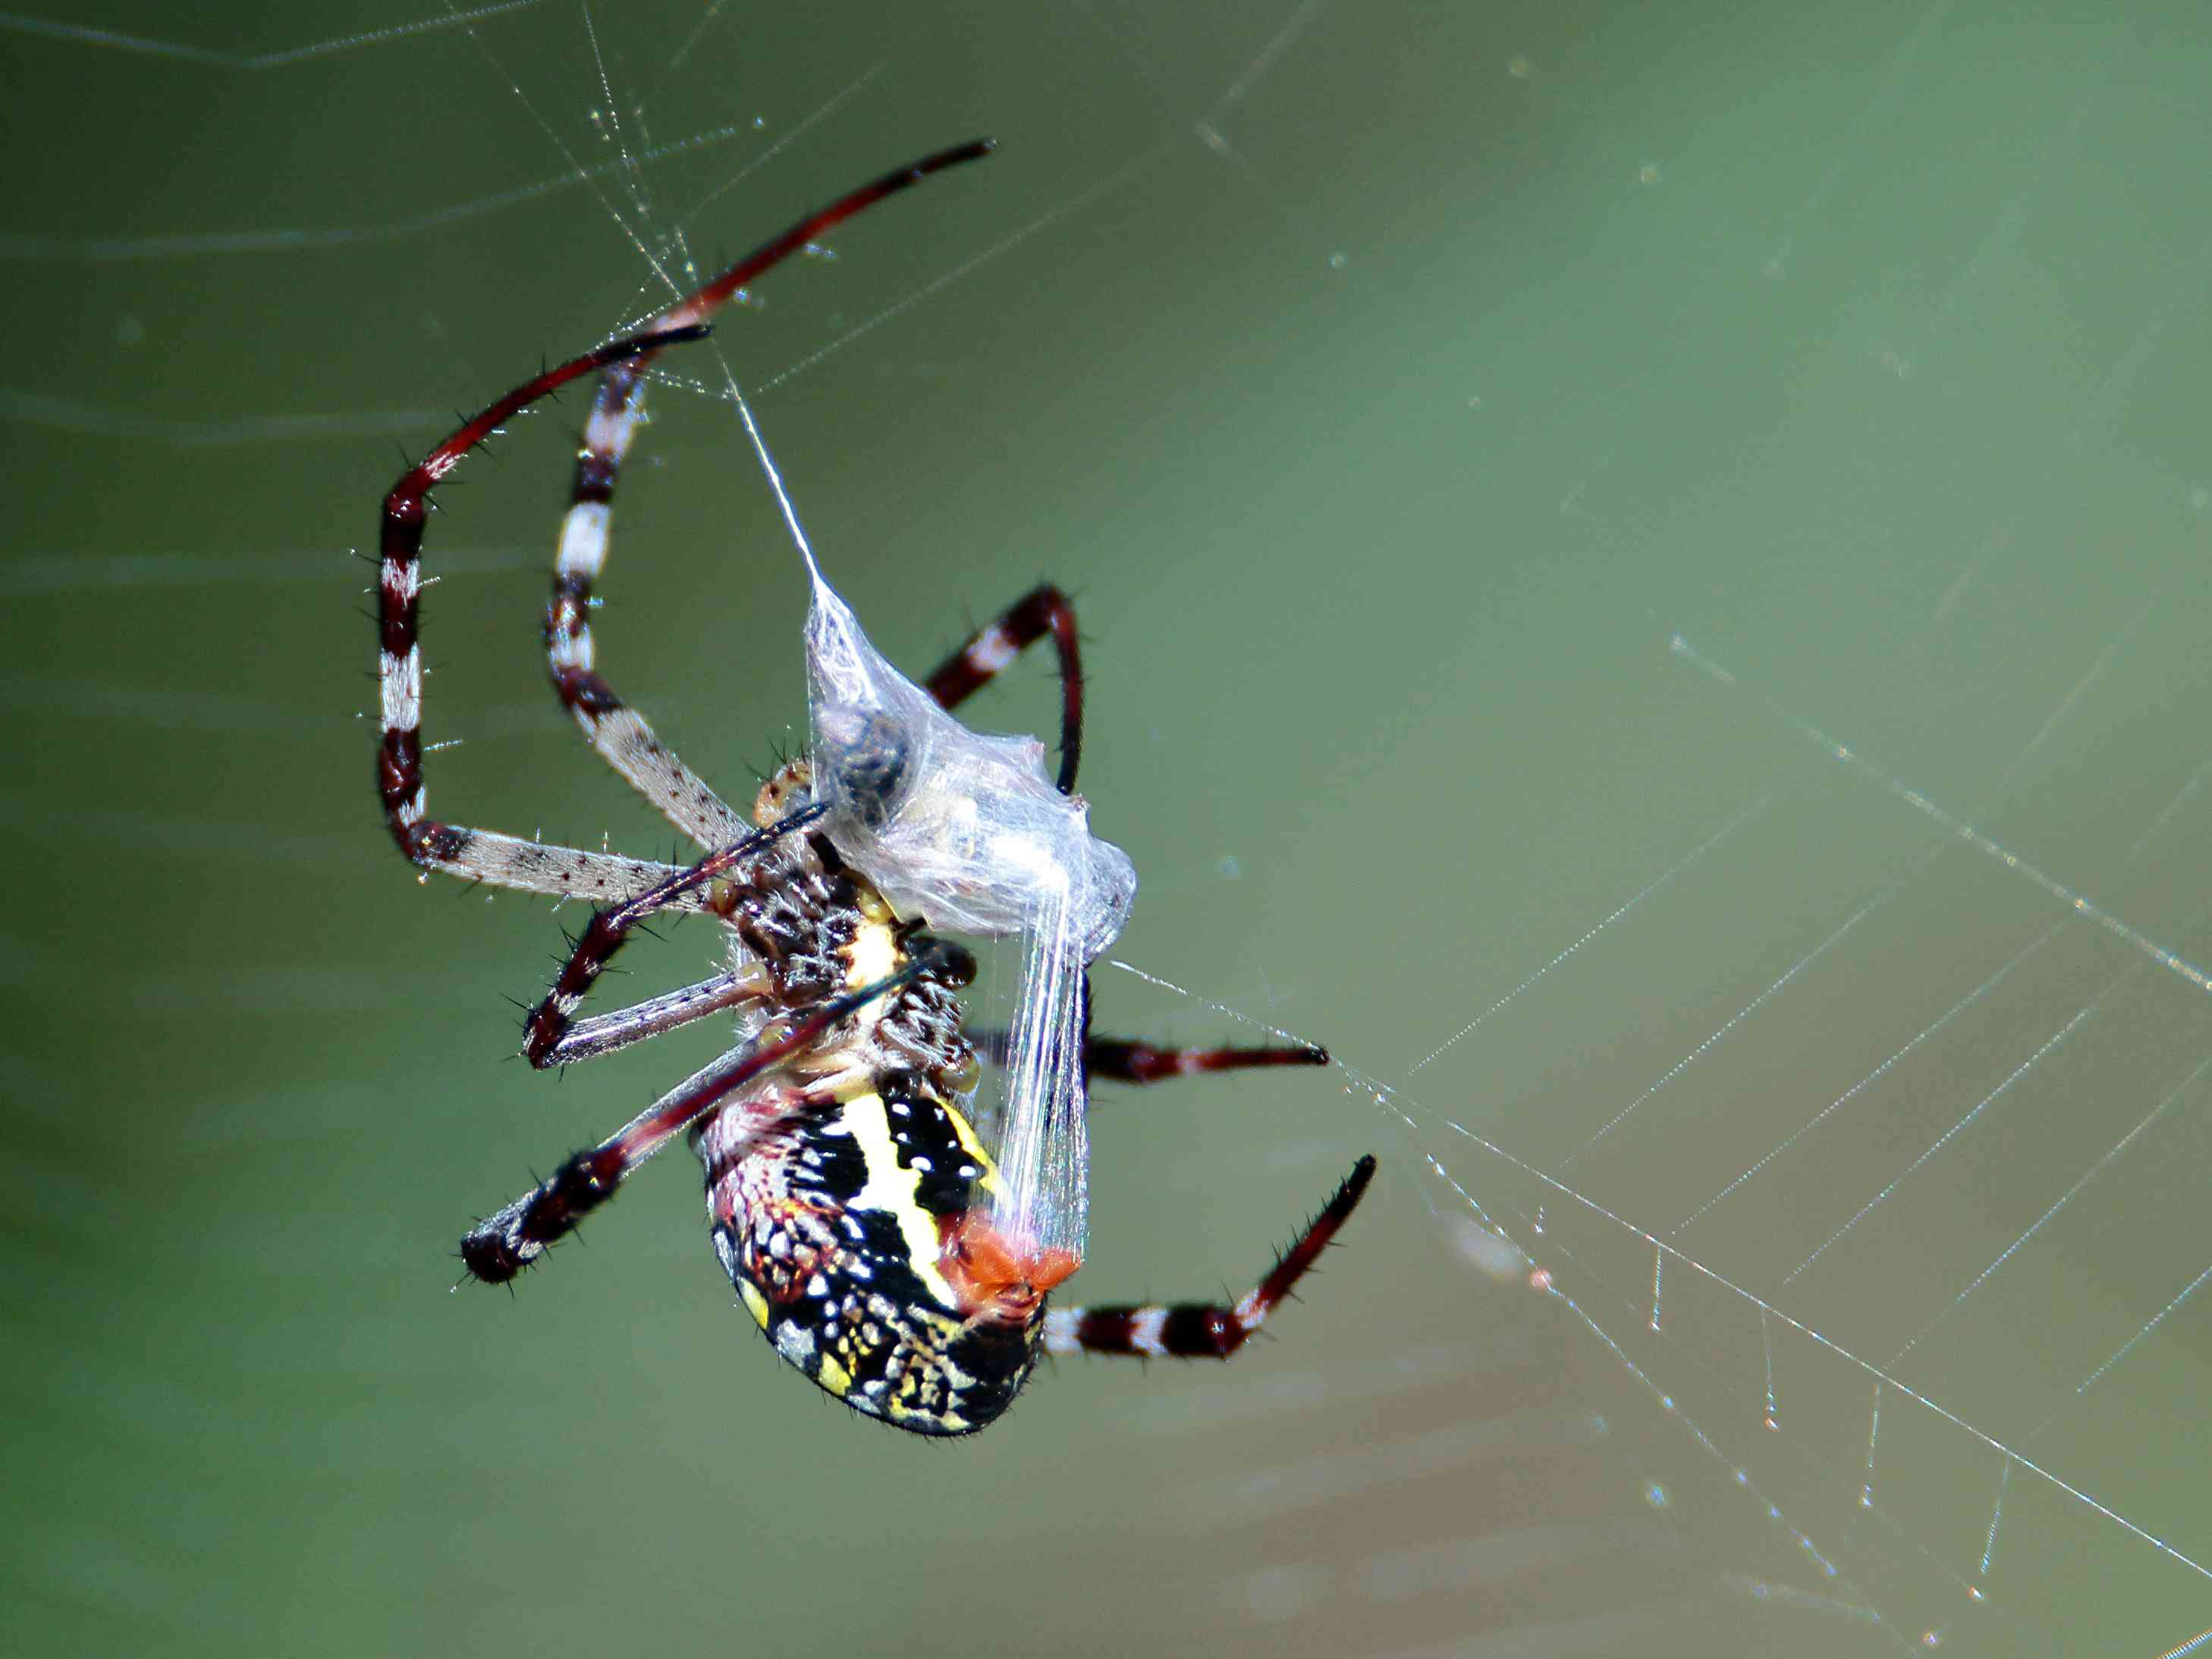 orb weaver spider wrapping prey in silk